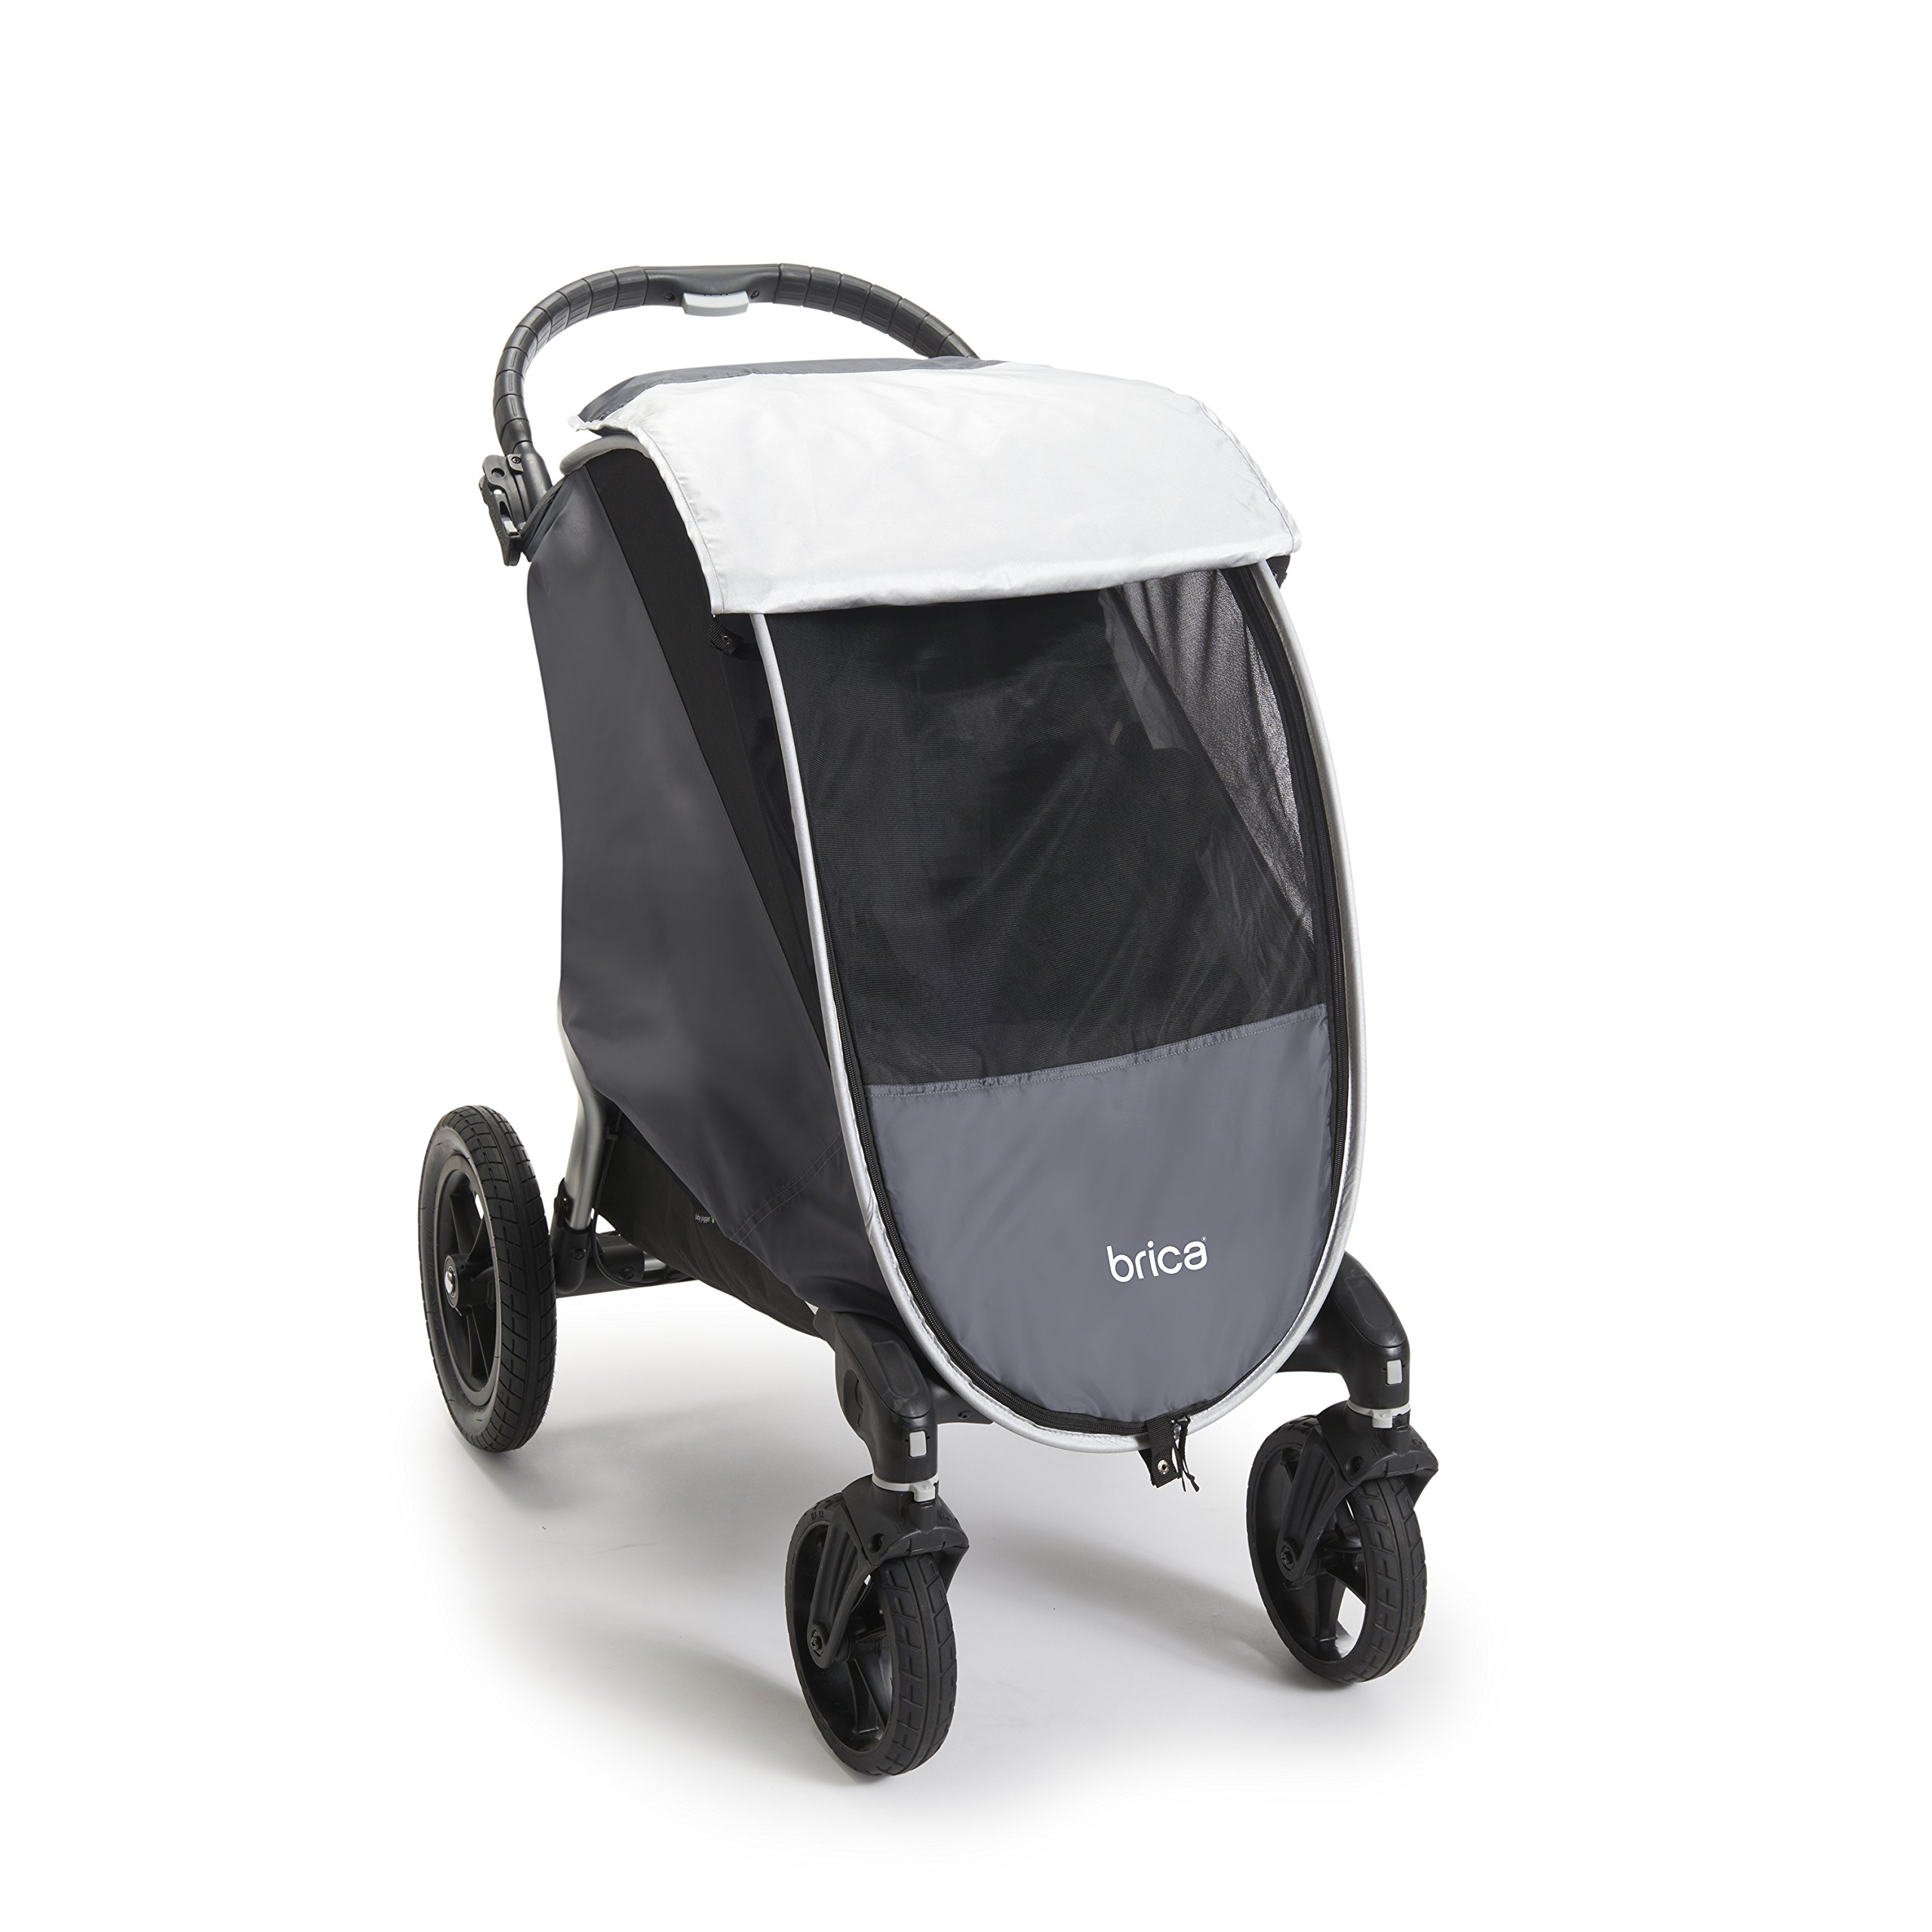 Munchkin Brica Shield Stroller Cover, Helps Block UVA/UVB Rays, Grey by Munchkin (Image #1)